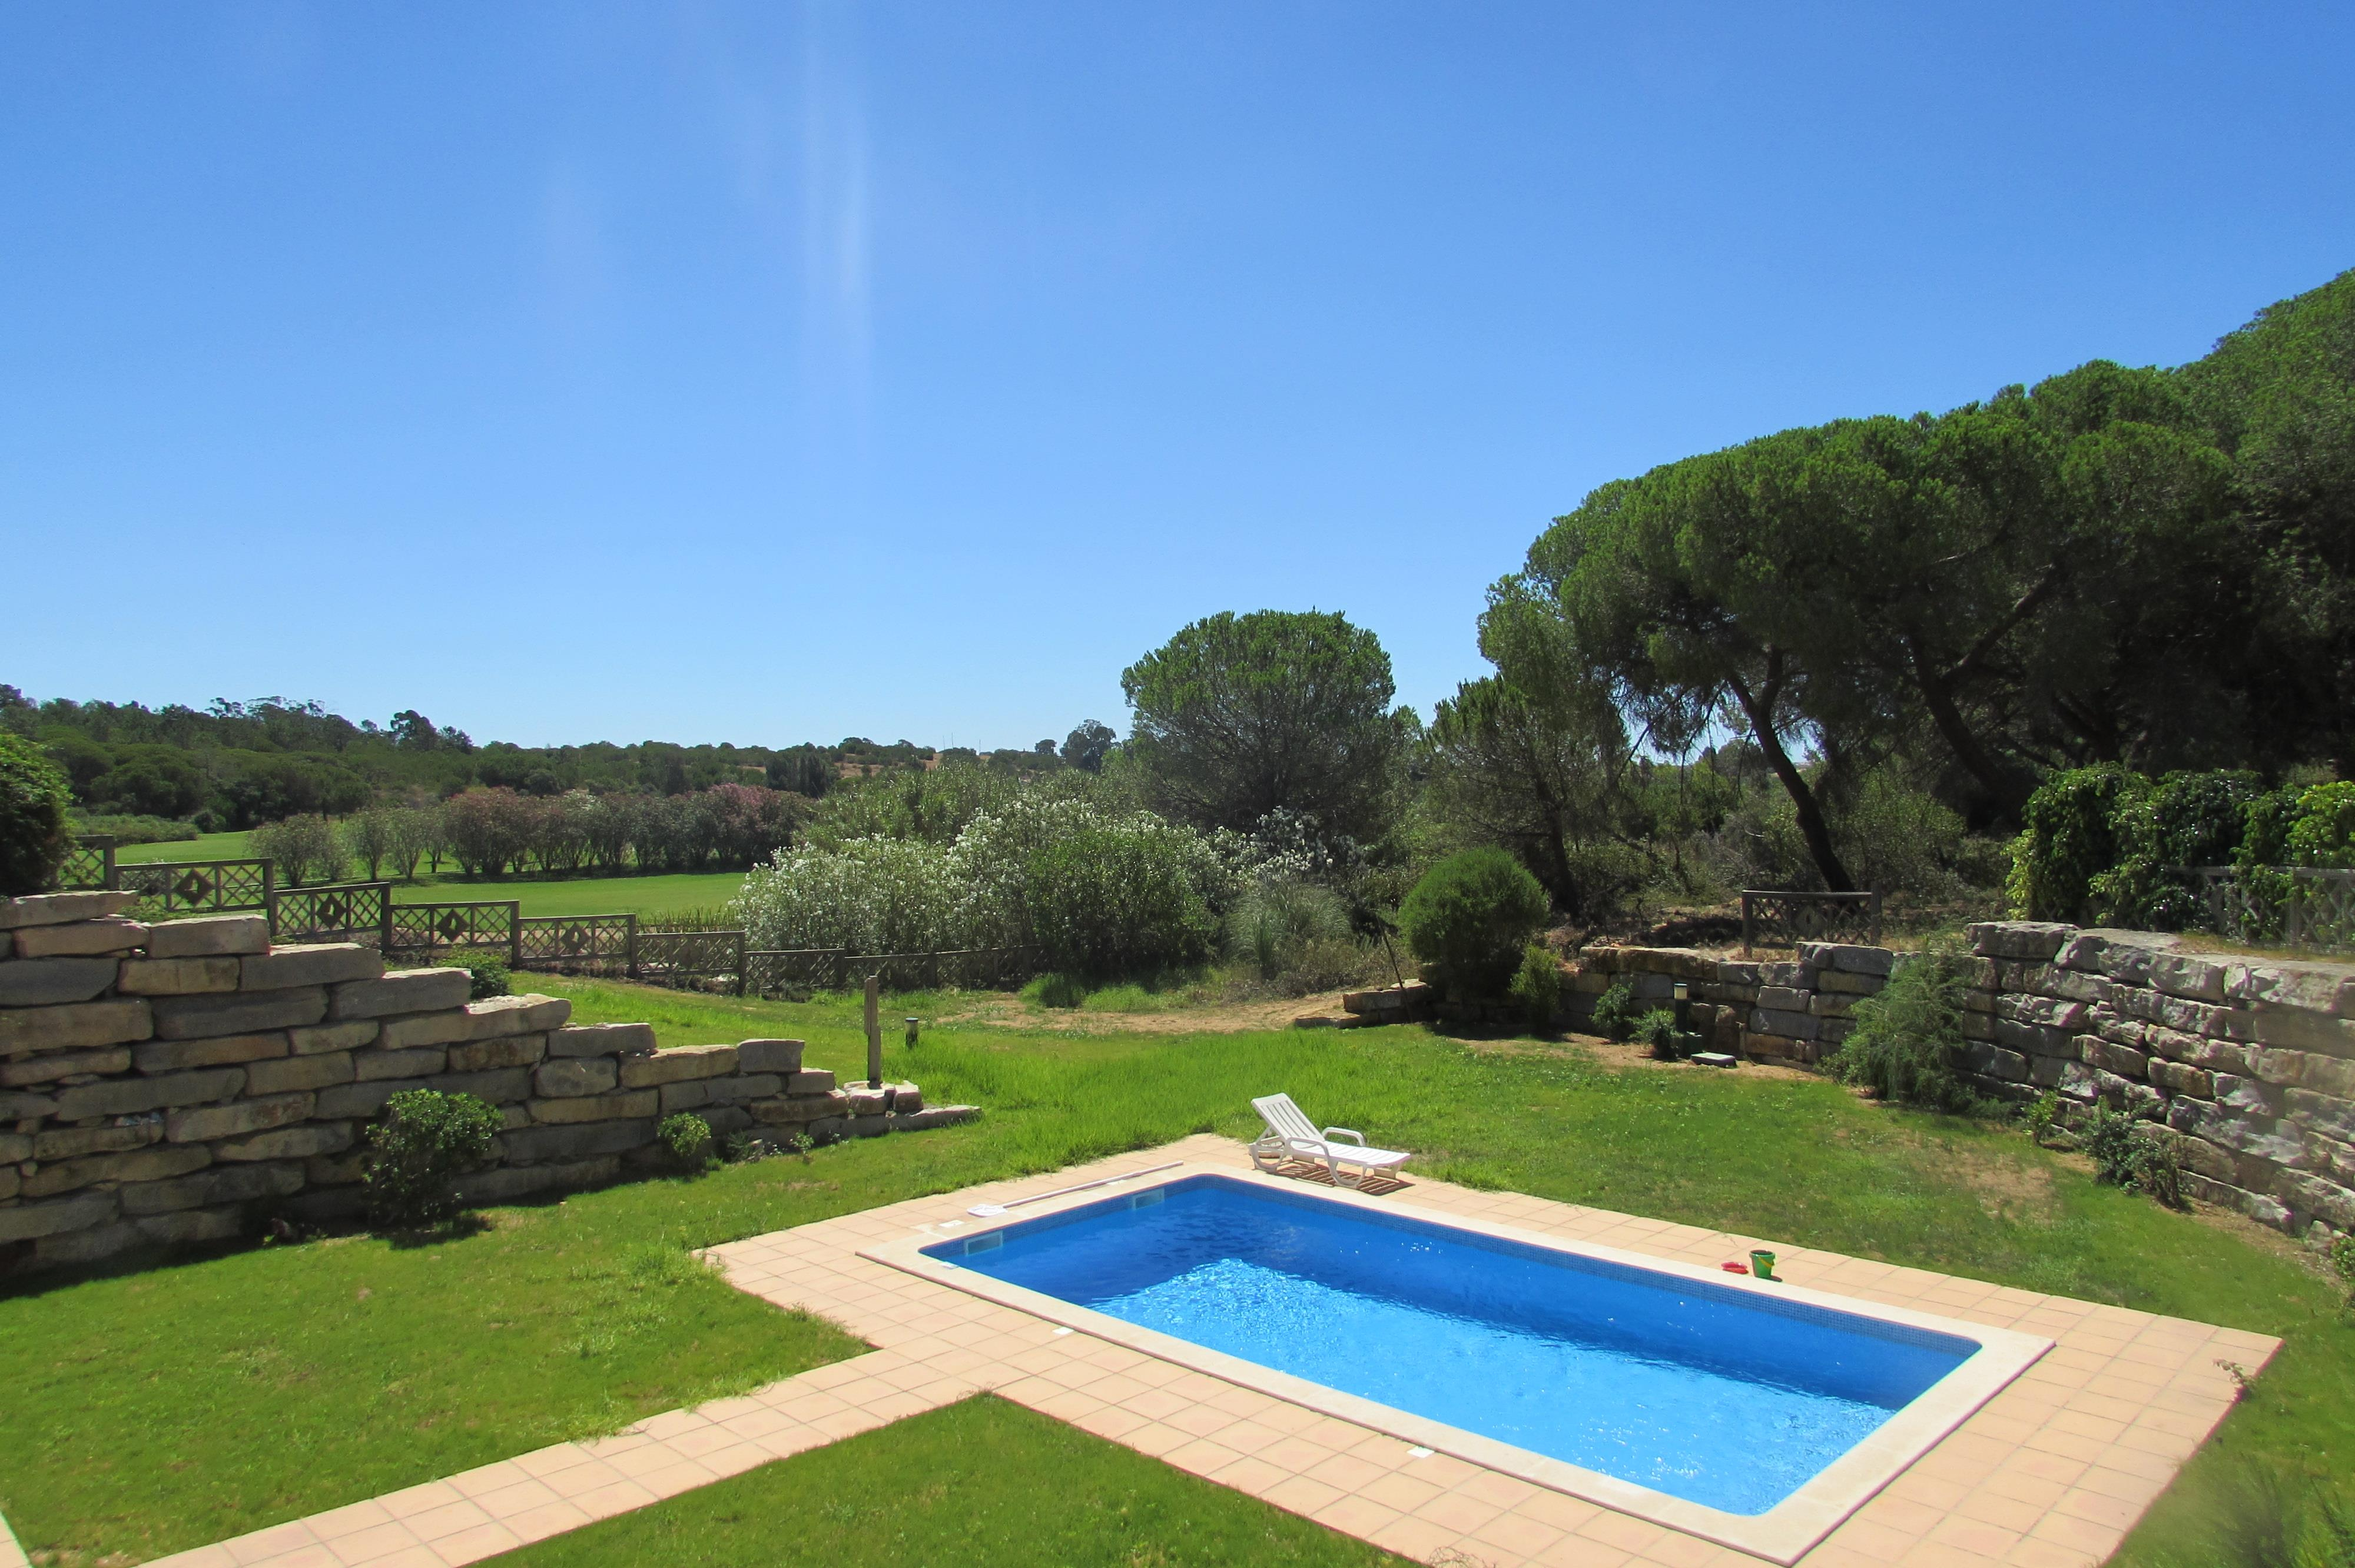 Single Family Home for Sale at Semi-detached house, 6 bedrooms, for Sale Loule, Algarve, 8135-162 Portugal